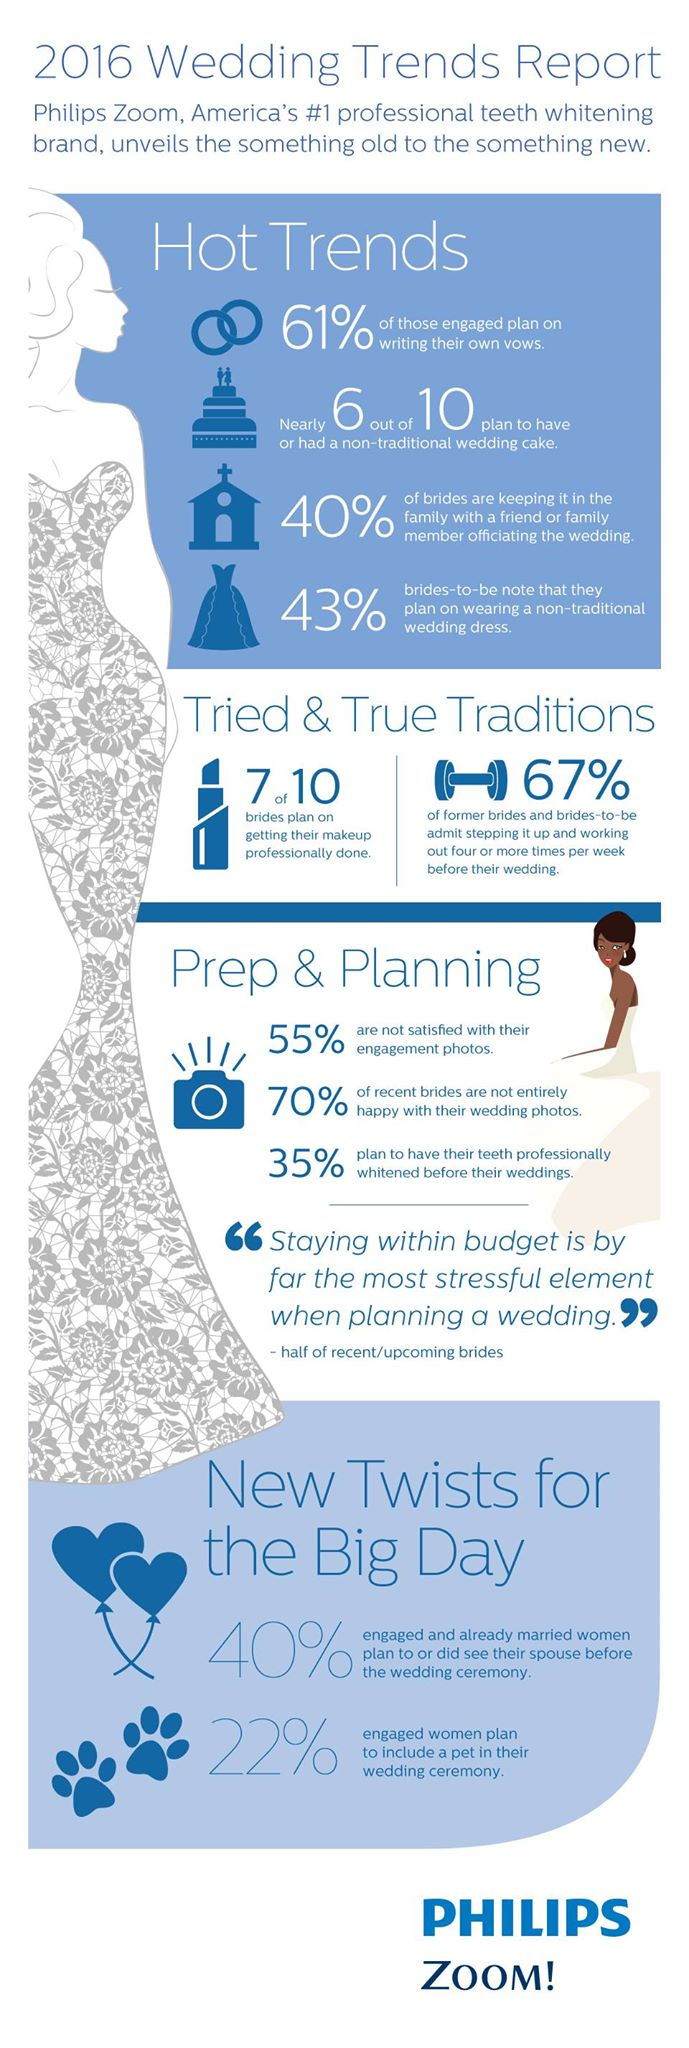 Wedding Trends and Traditions Infographic from Philips Zoom